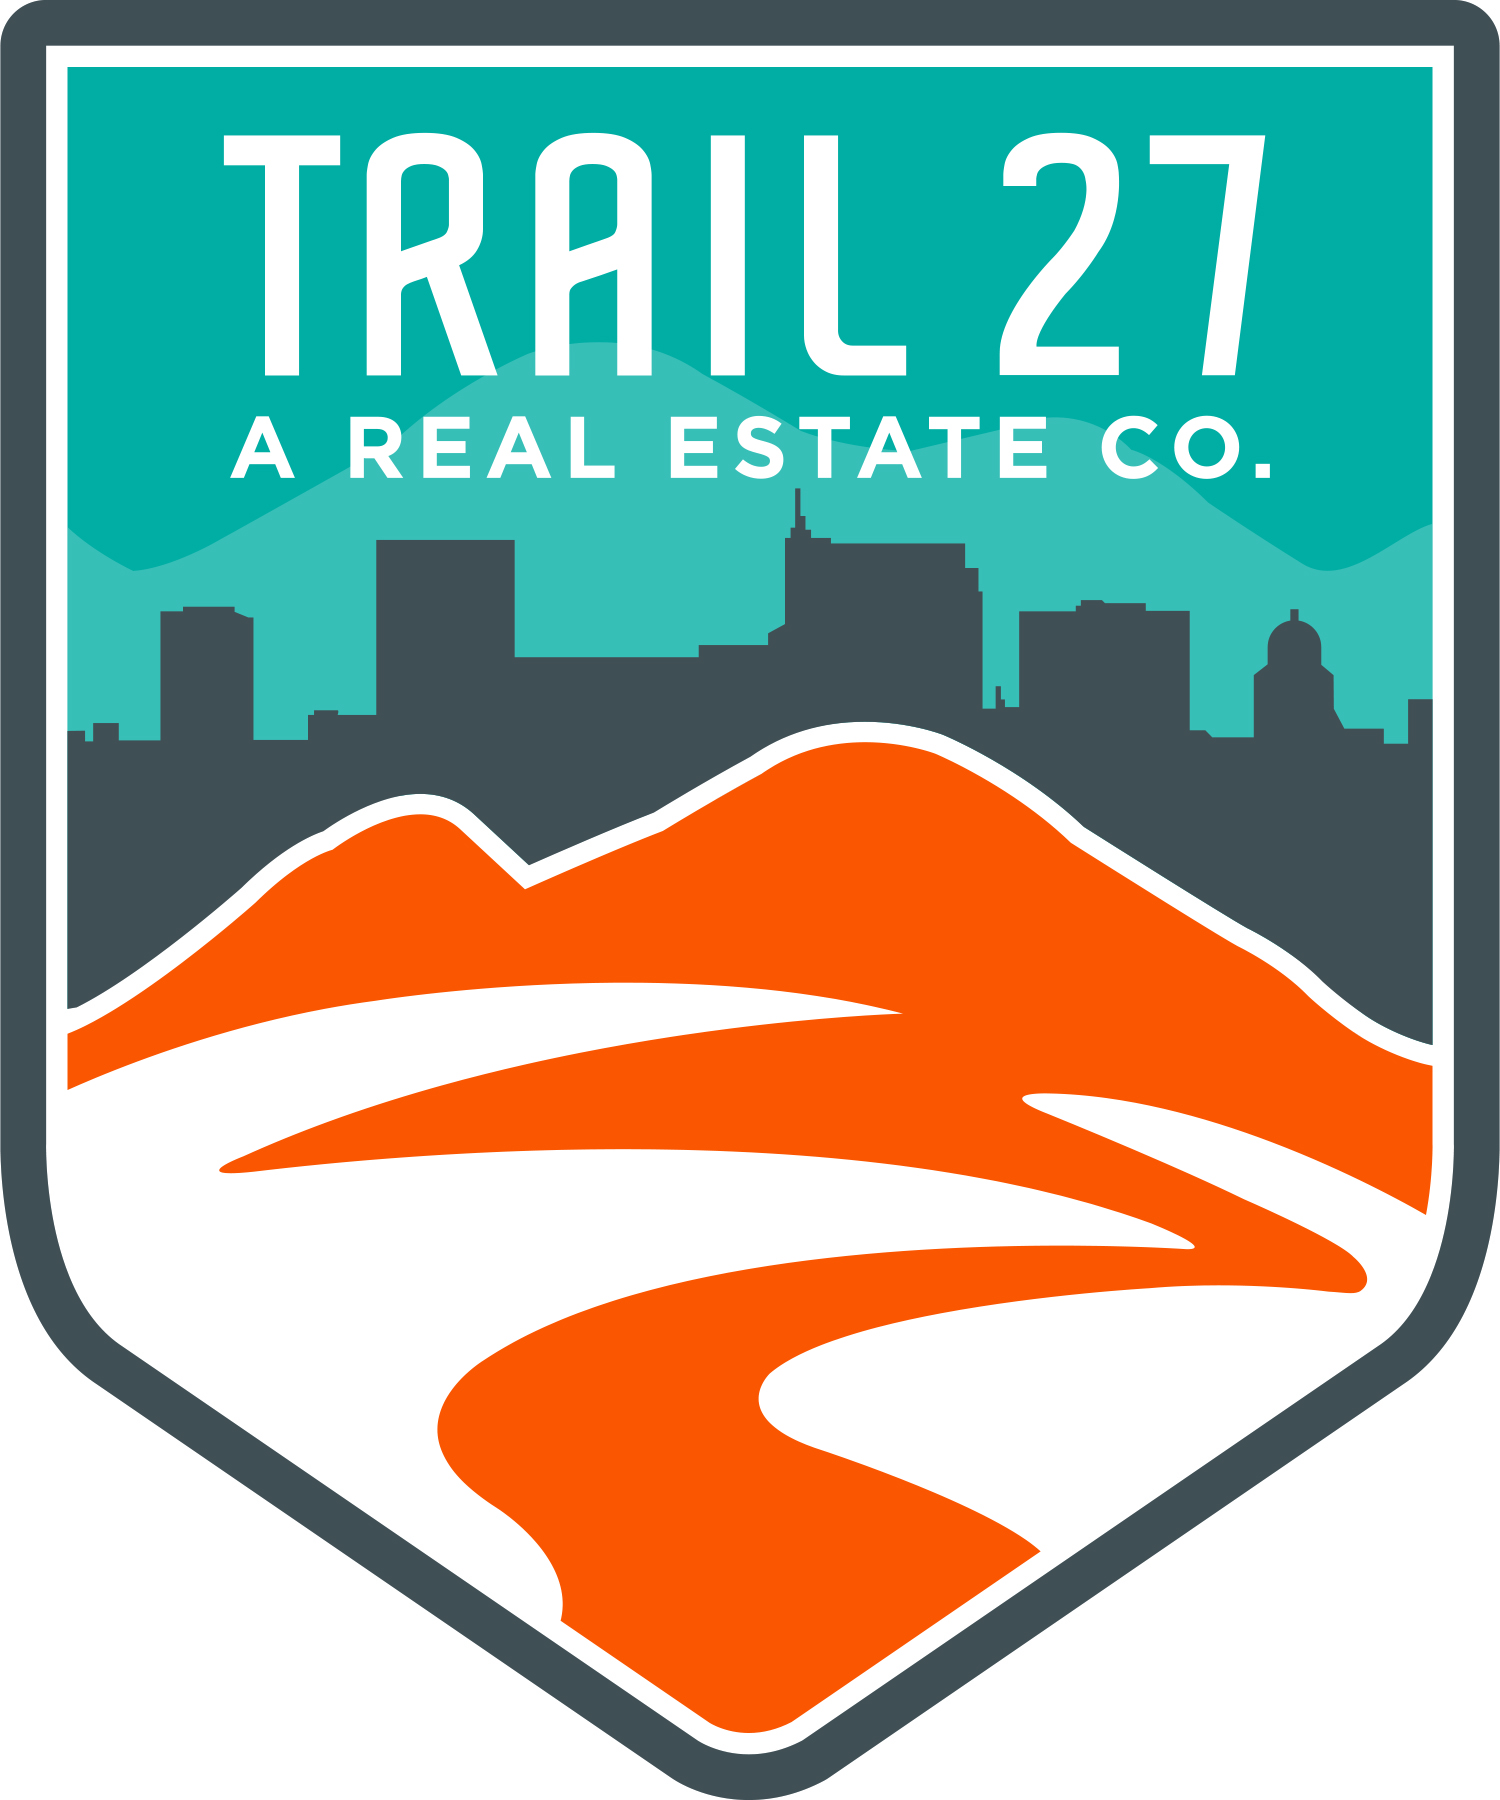 Trail 27, a real estate co.